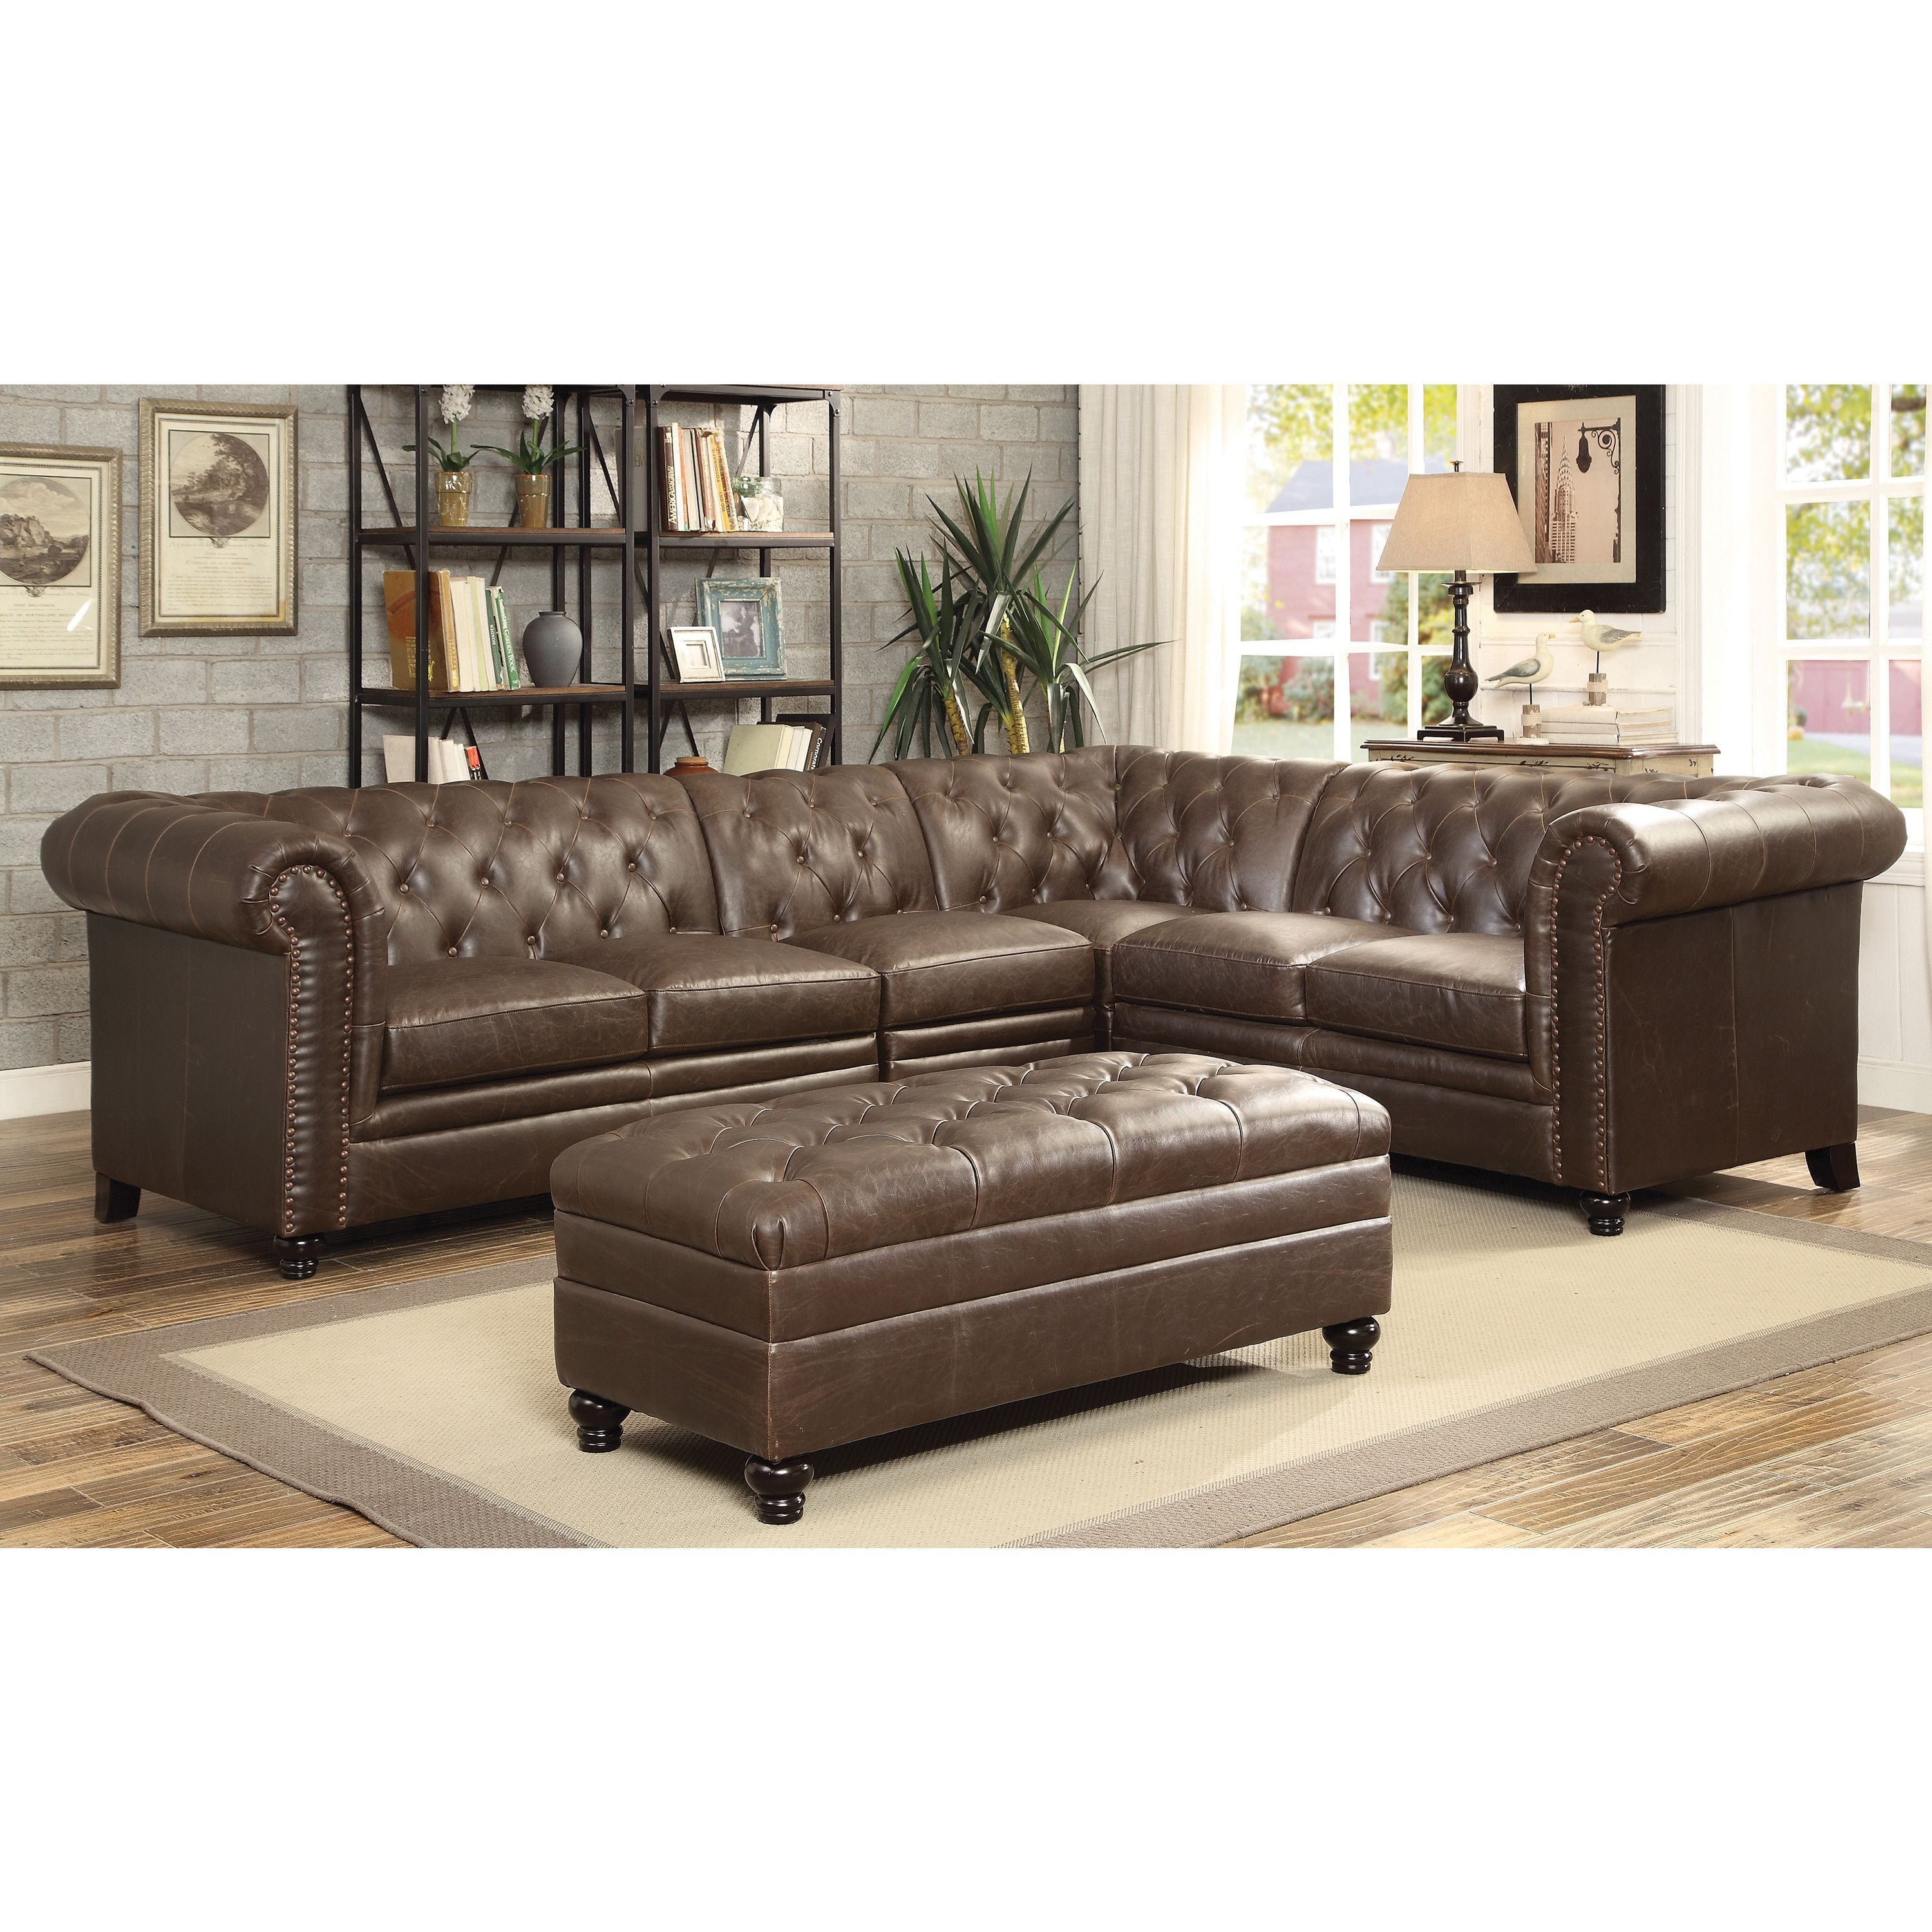 Best Brown Leather Tufted Sectional Sofa Overstock Com 400 x 300